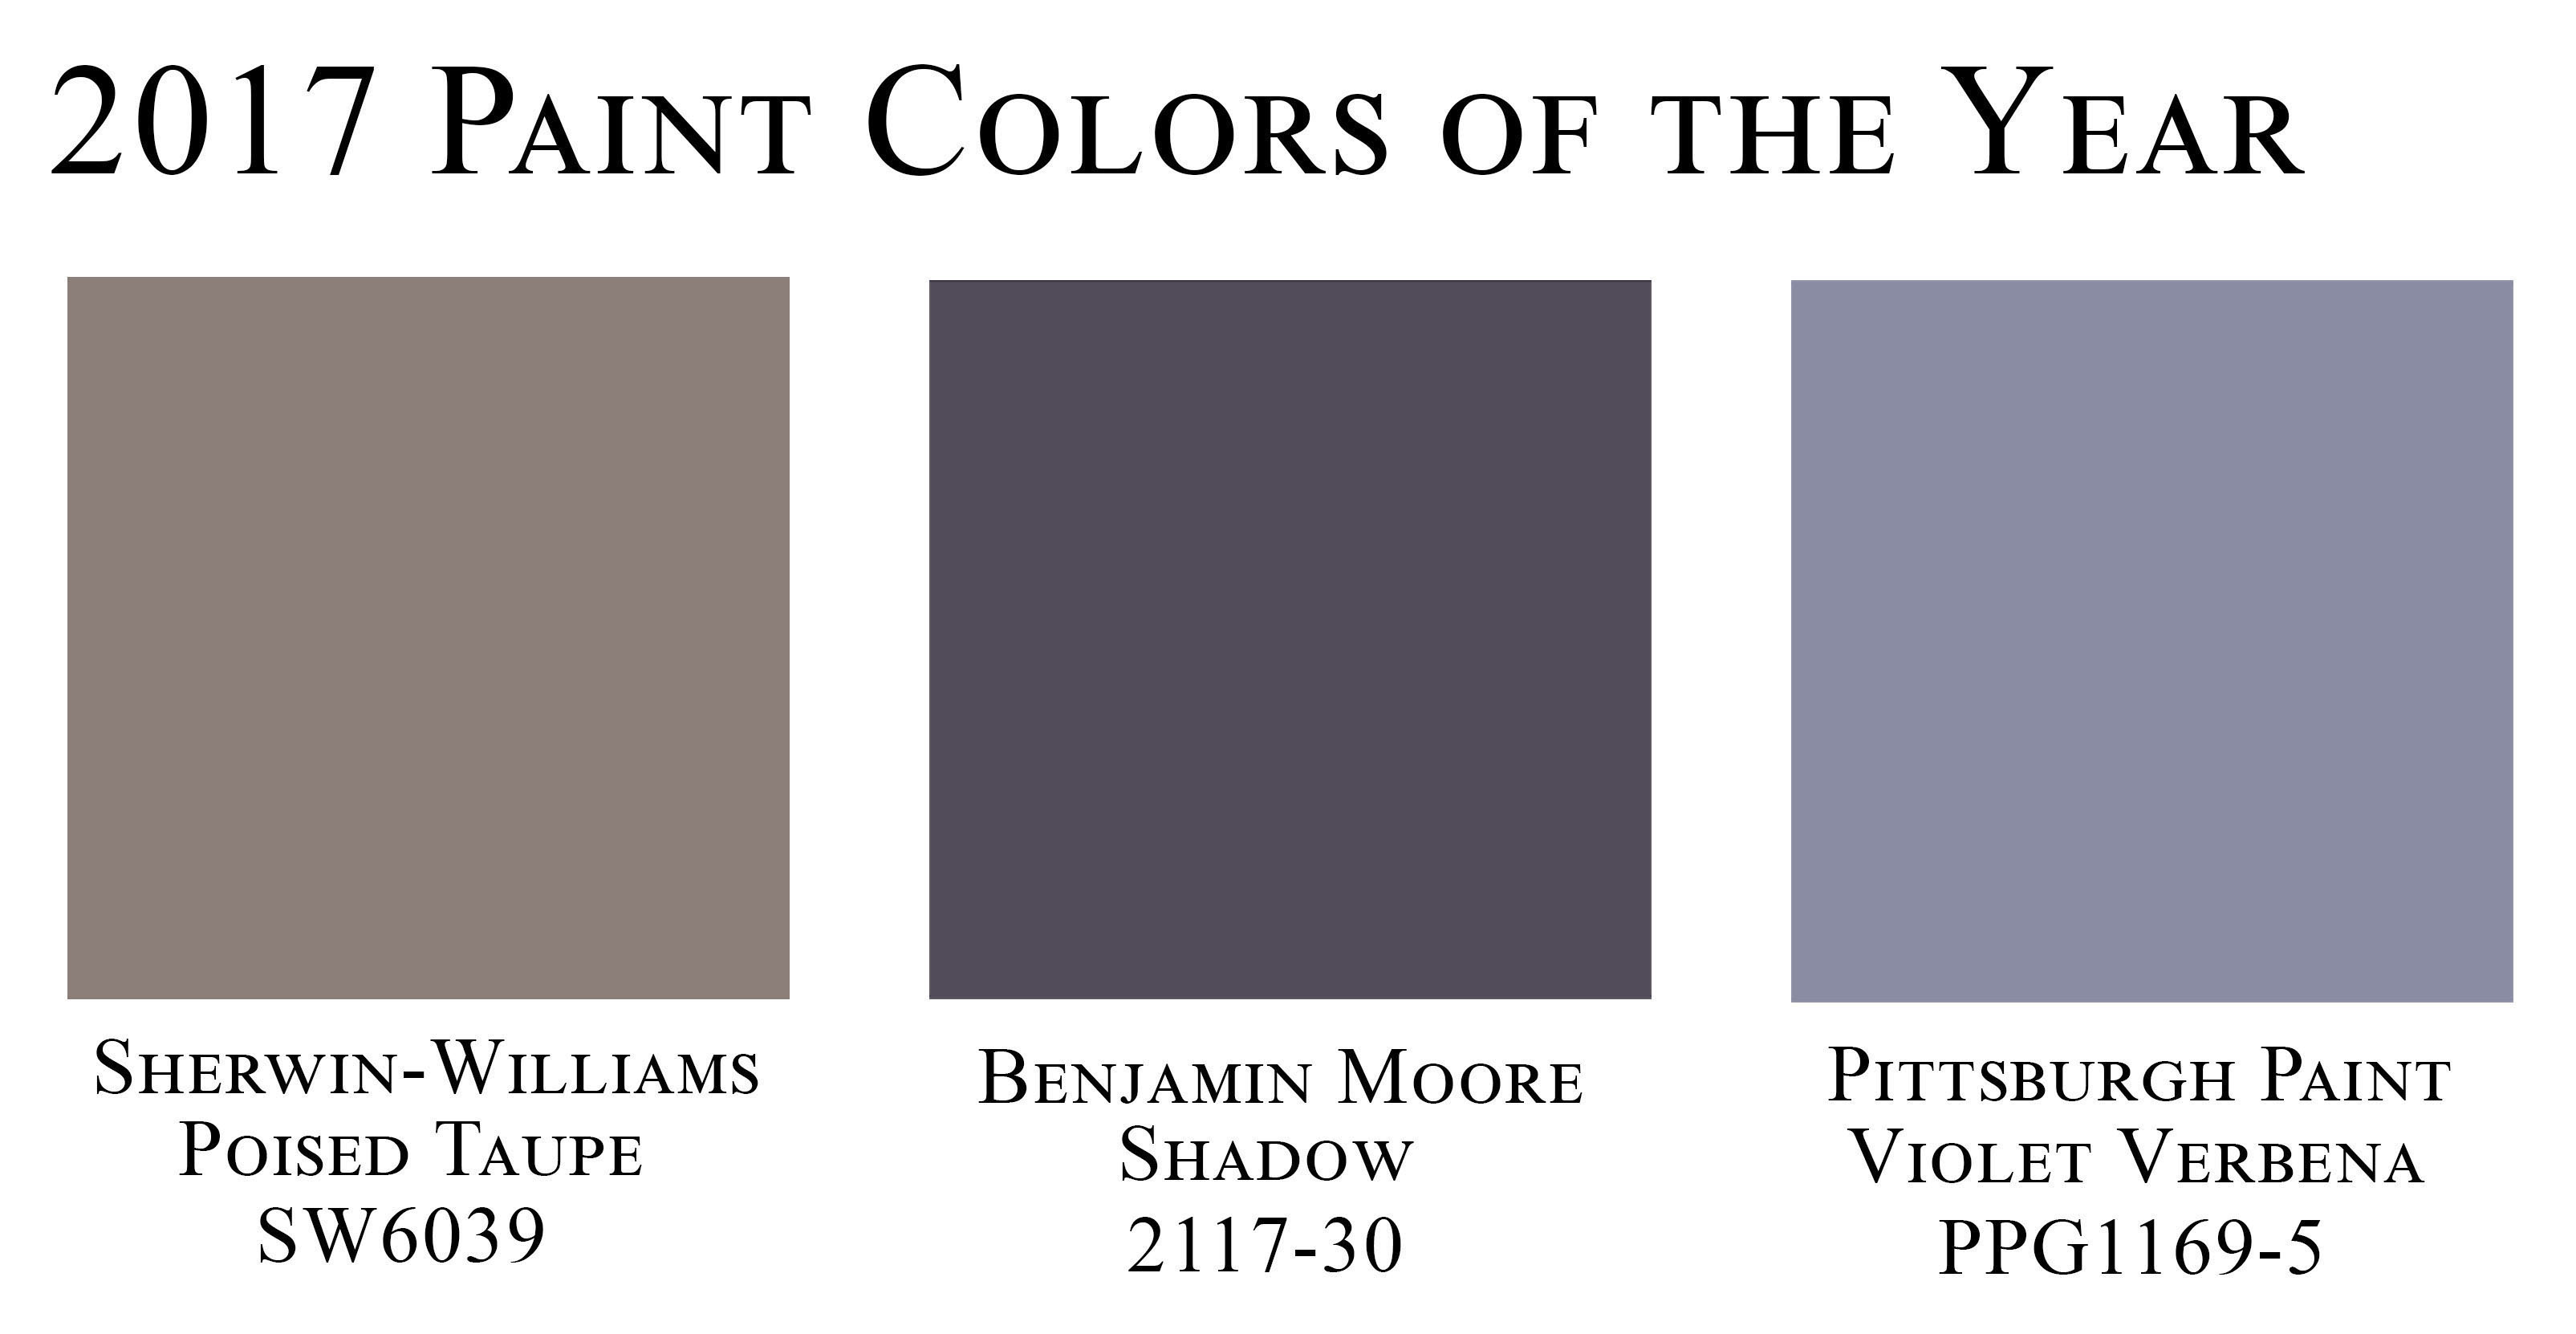 2017 paint colors of the year caldwell cline architects Paint color of the year